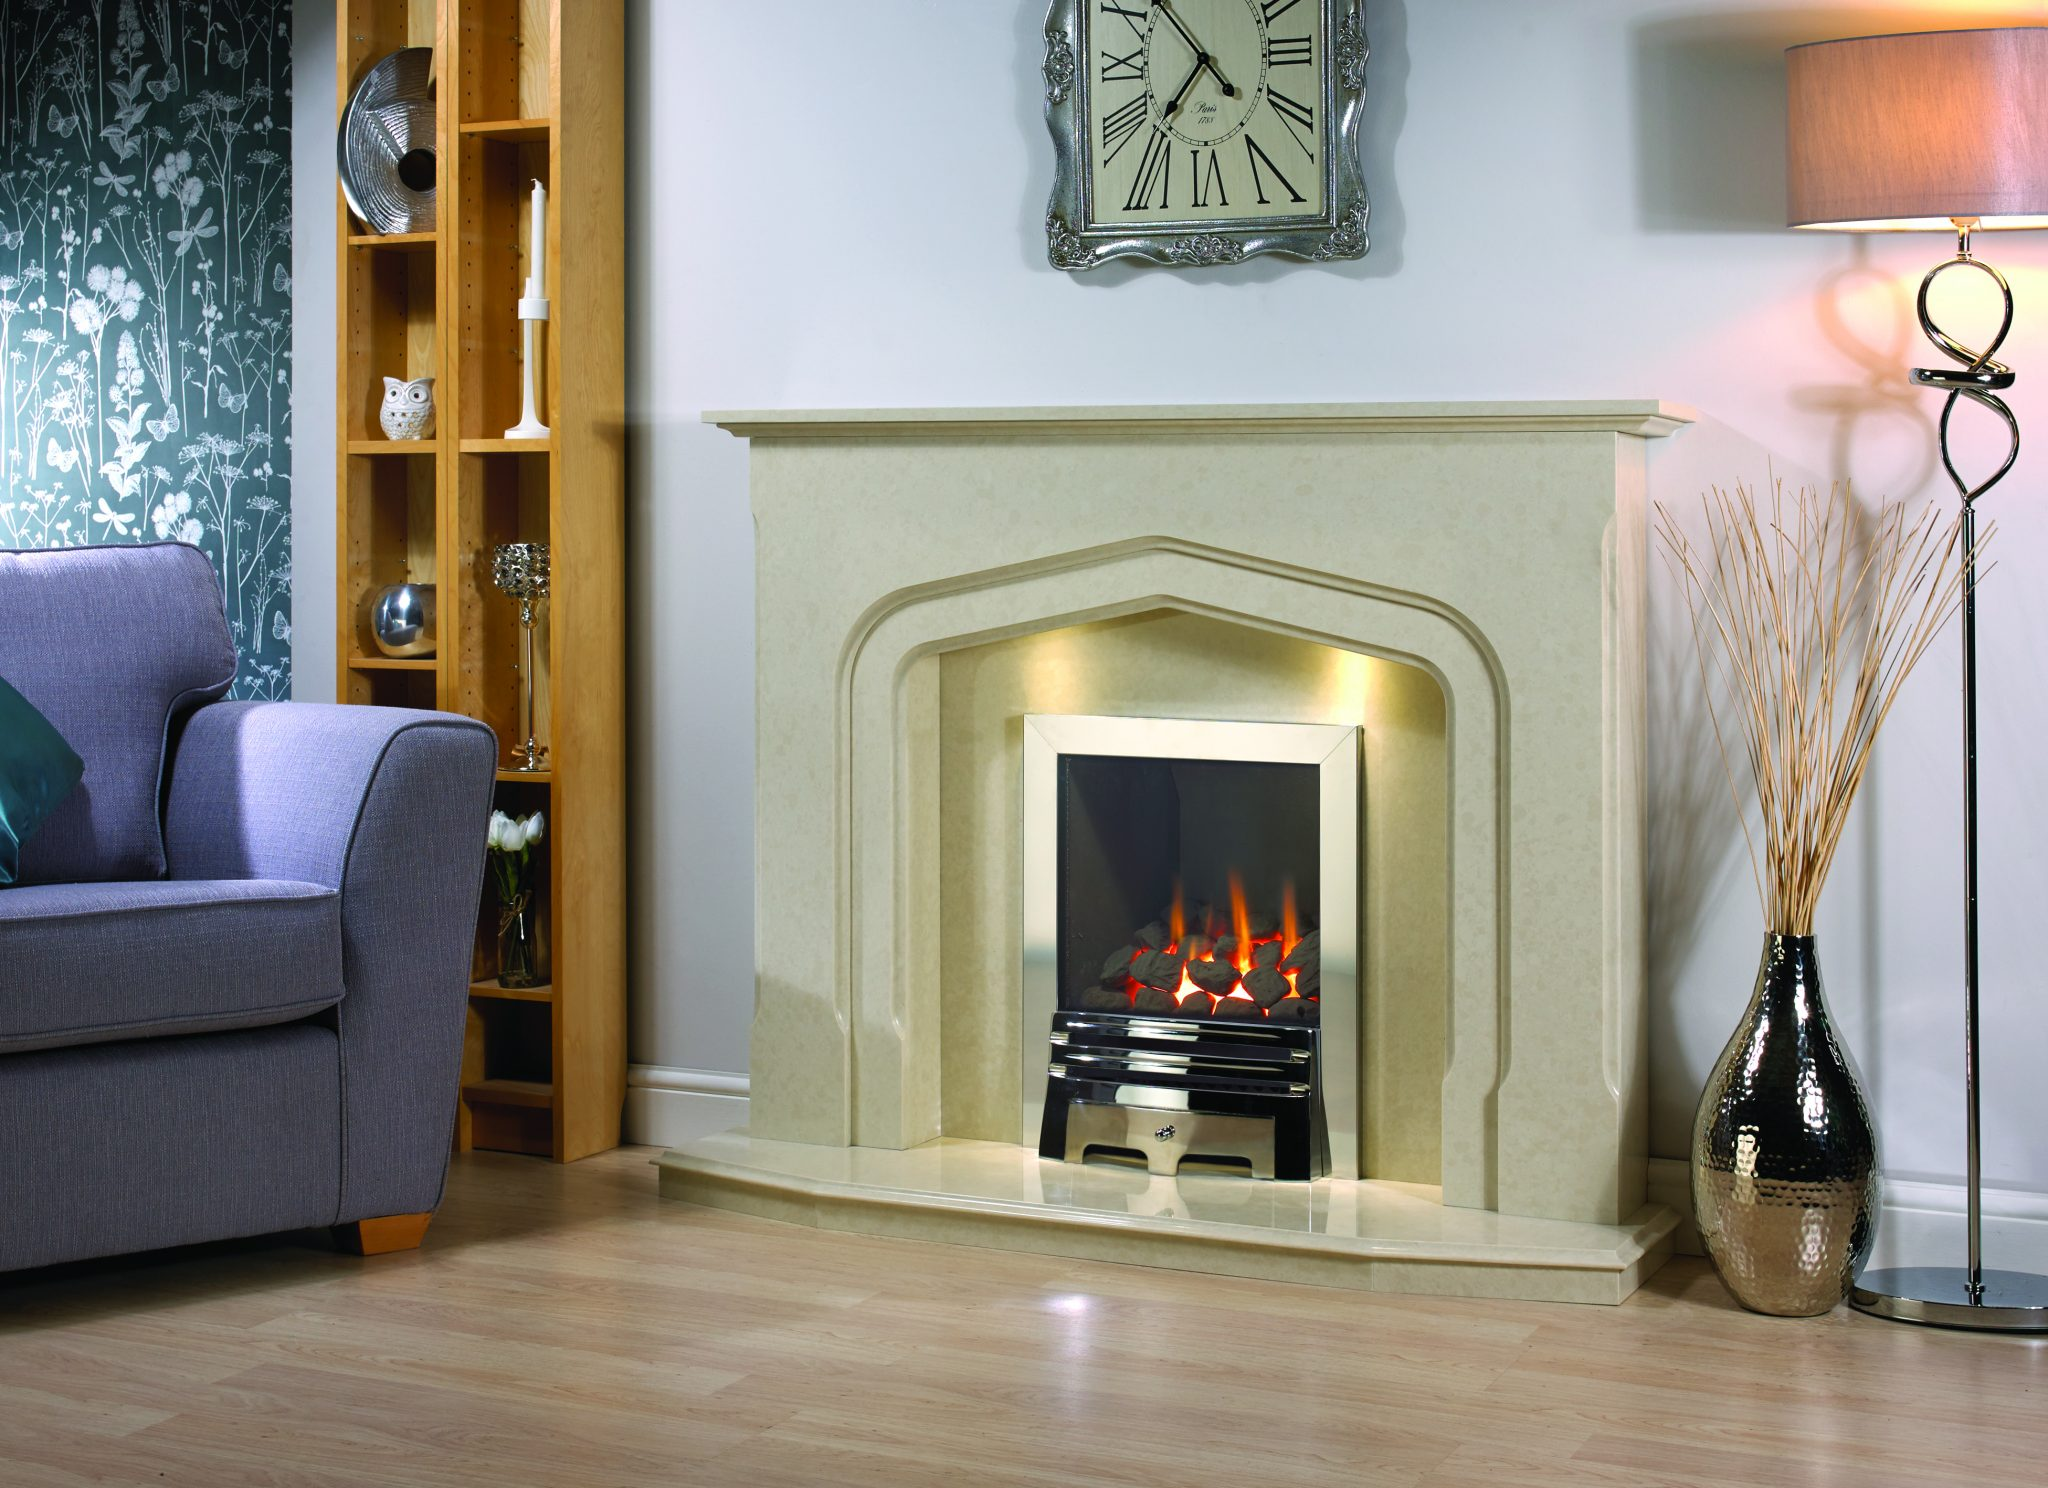 The Windsor micromarble fireplace